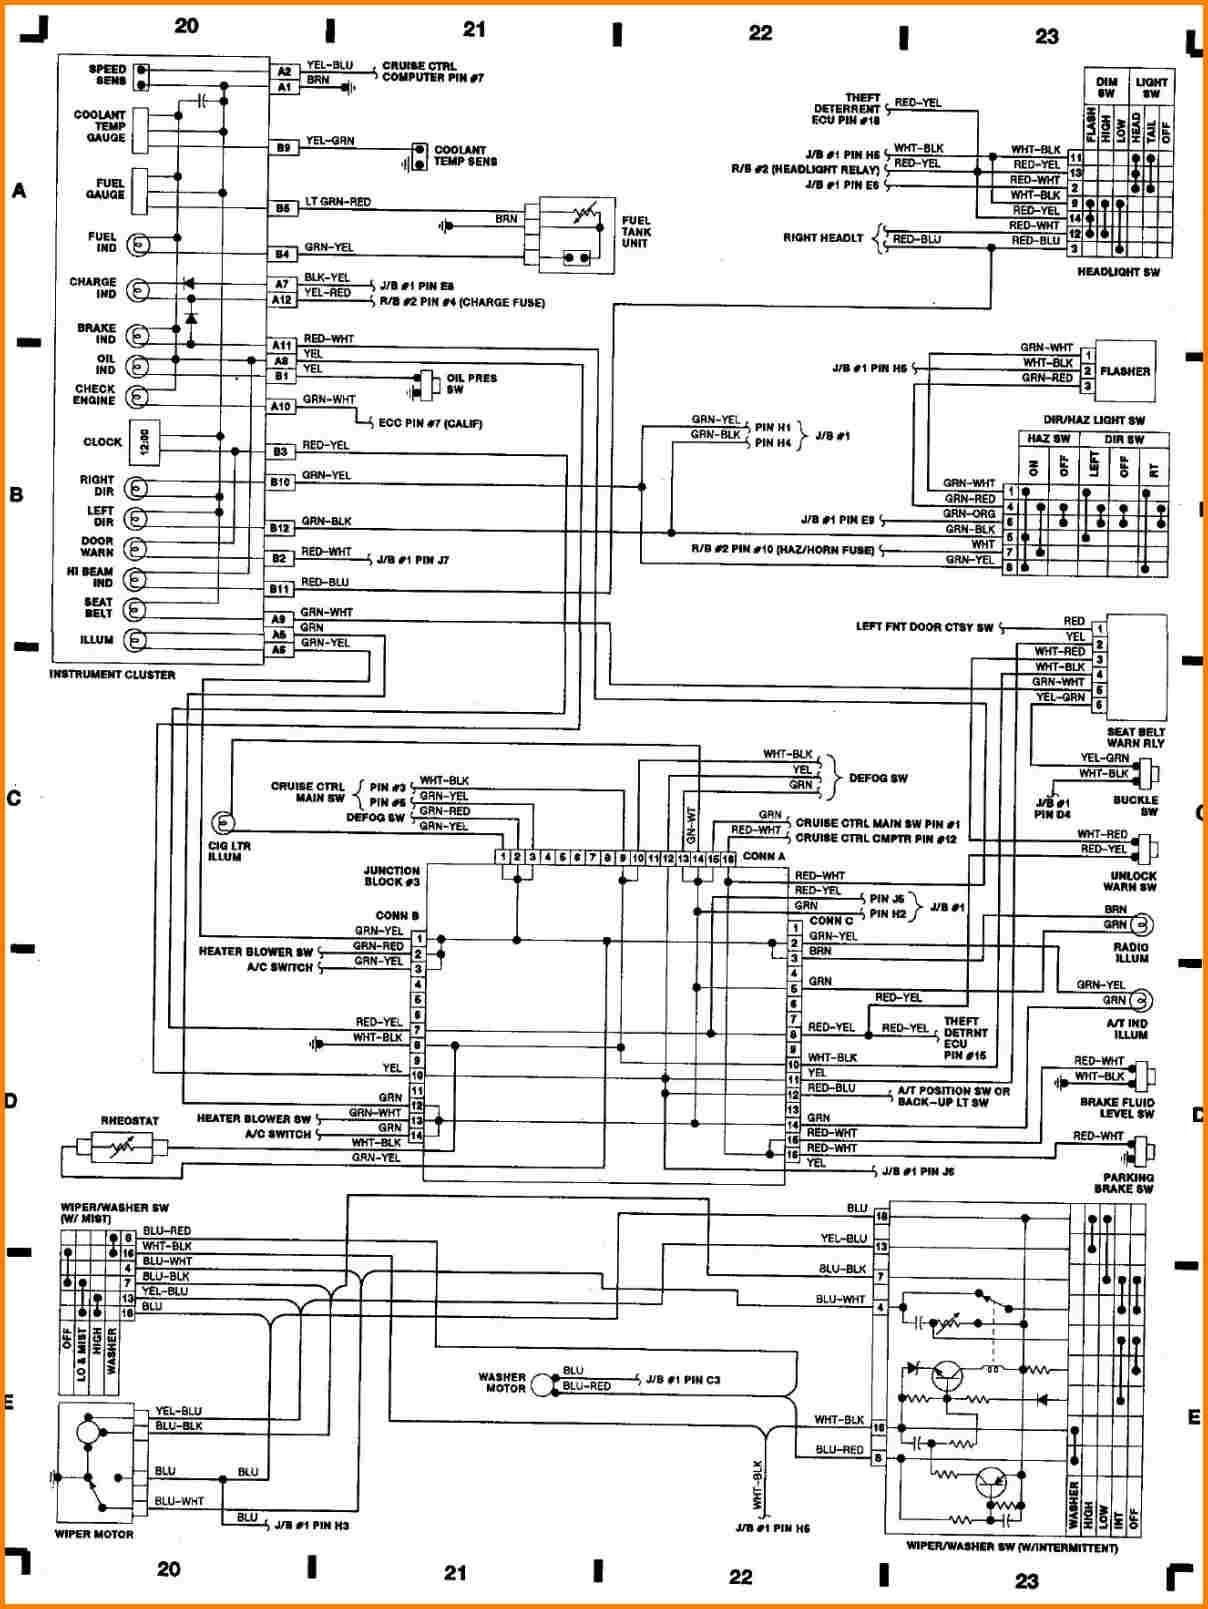 Wiring Diagram for 2002 toyota Tacoma toyota Ta A Wiring Harness Clamp Diagram Lincoln Mark Lt Of Wiring Diagram for 2002 toyota Tacoma